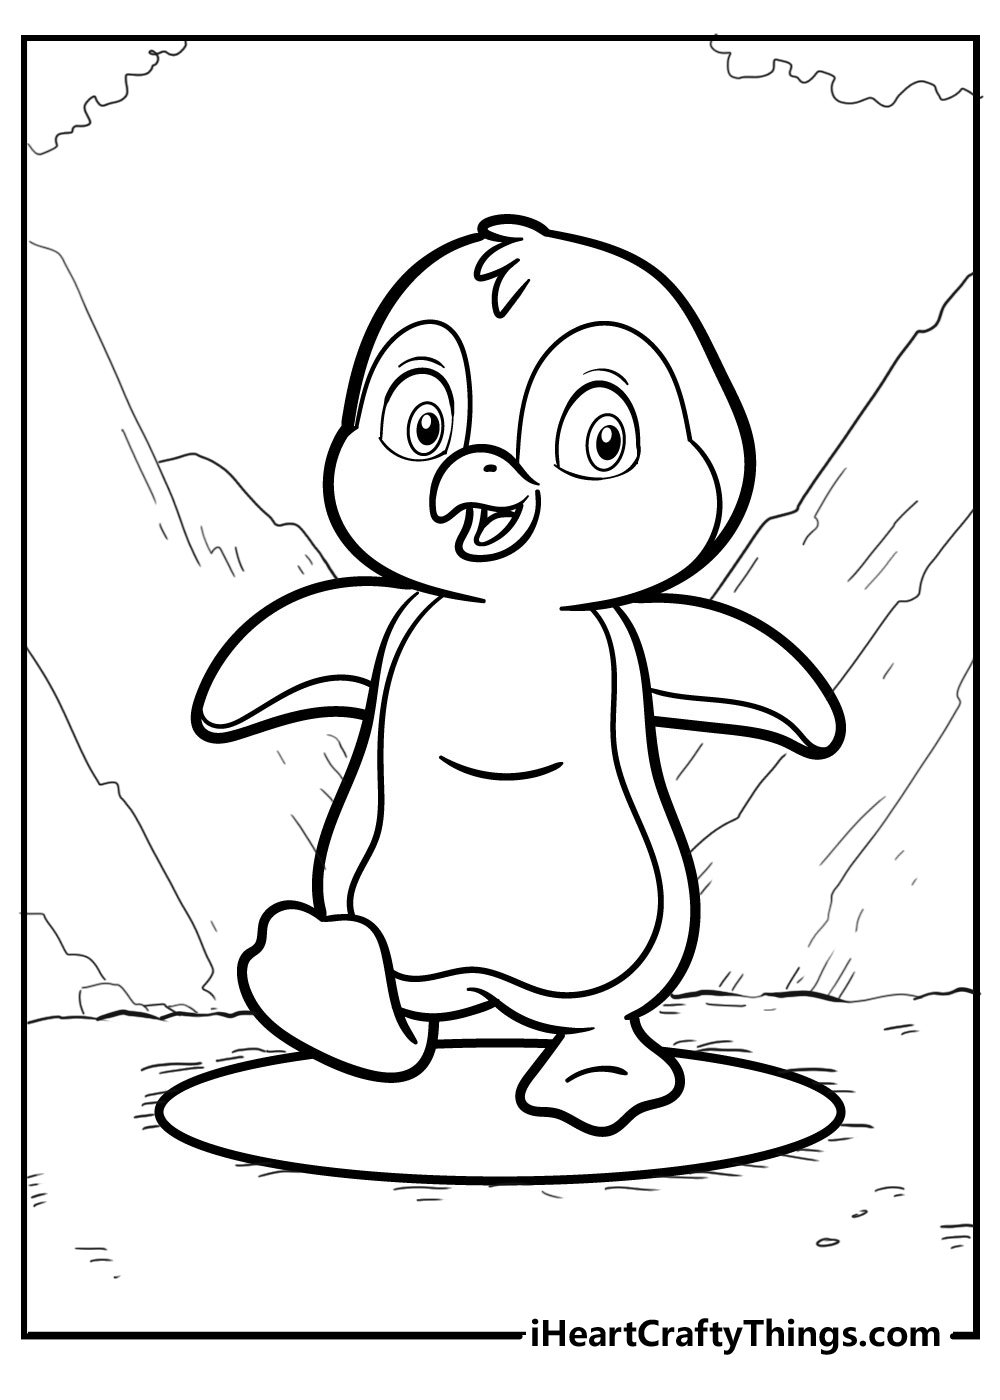 penguin colouring pages for kids